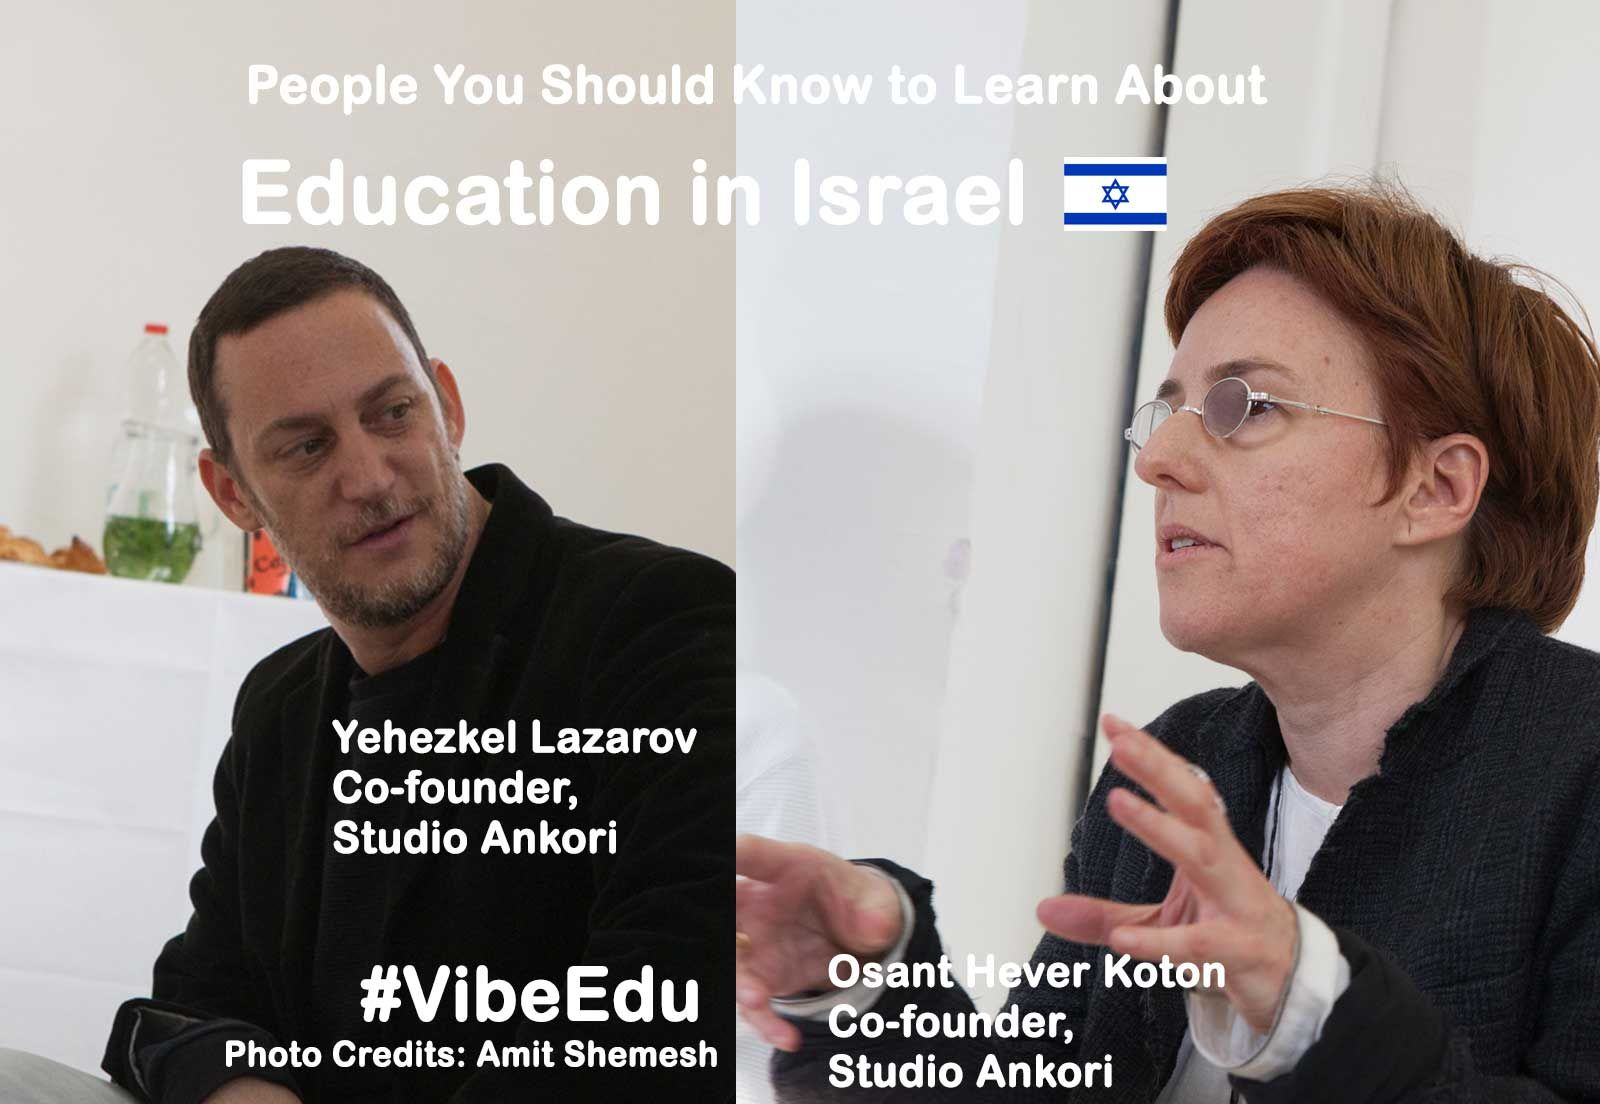 People you must know - education in #Israel - Yehezkel LazarovCo-founderStudio Ankori #VibeEdu @VibeIsrael #edchat http://ift.tt/1SlCCtp